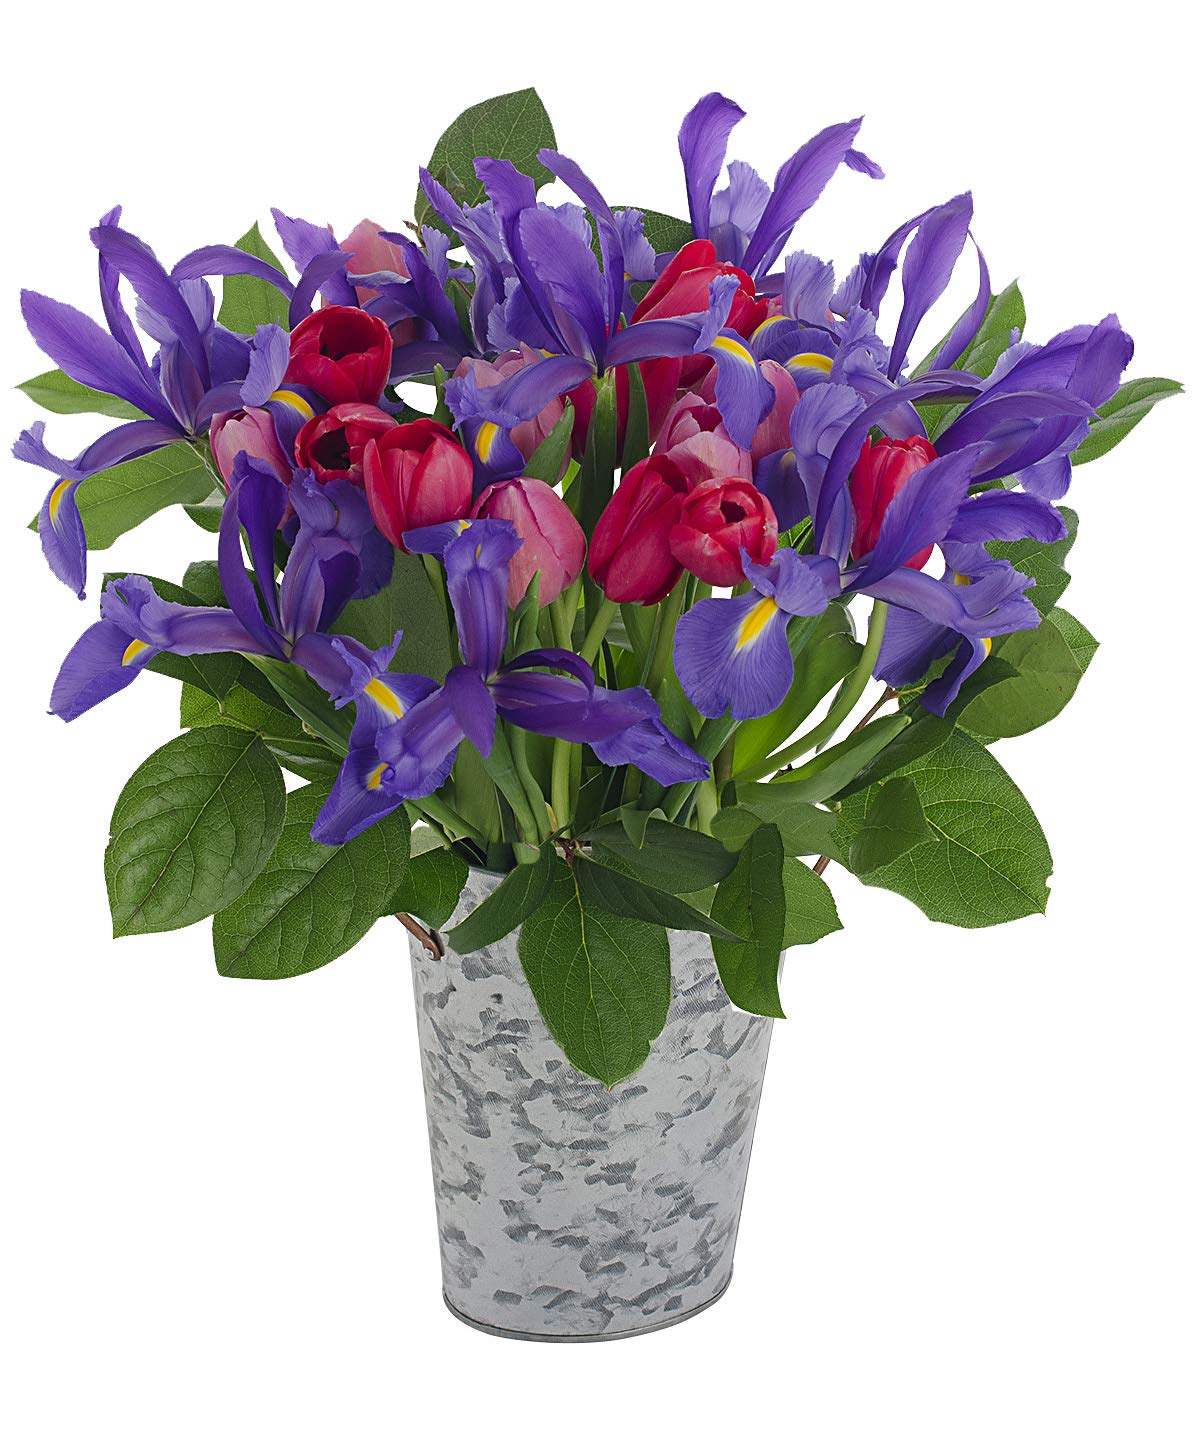 Stargazer Barn Stargazer Barn - Big Hug Bouquet - 26 Stems Of Tulips and Telstar Iris With Vase - Farm Fresh by Stargazer Barn